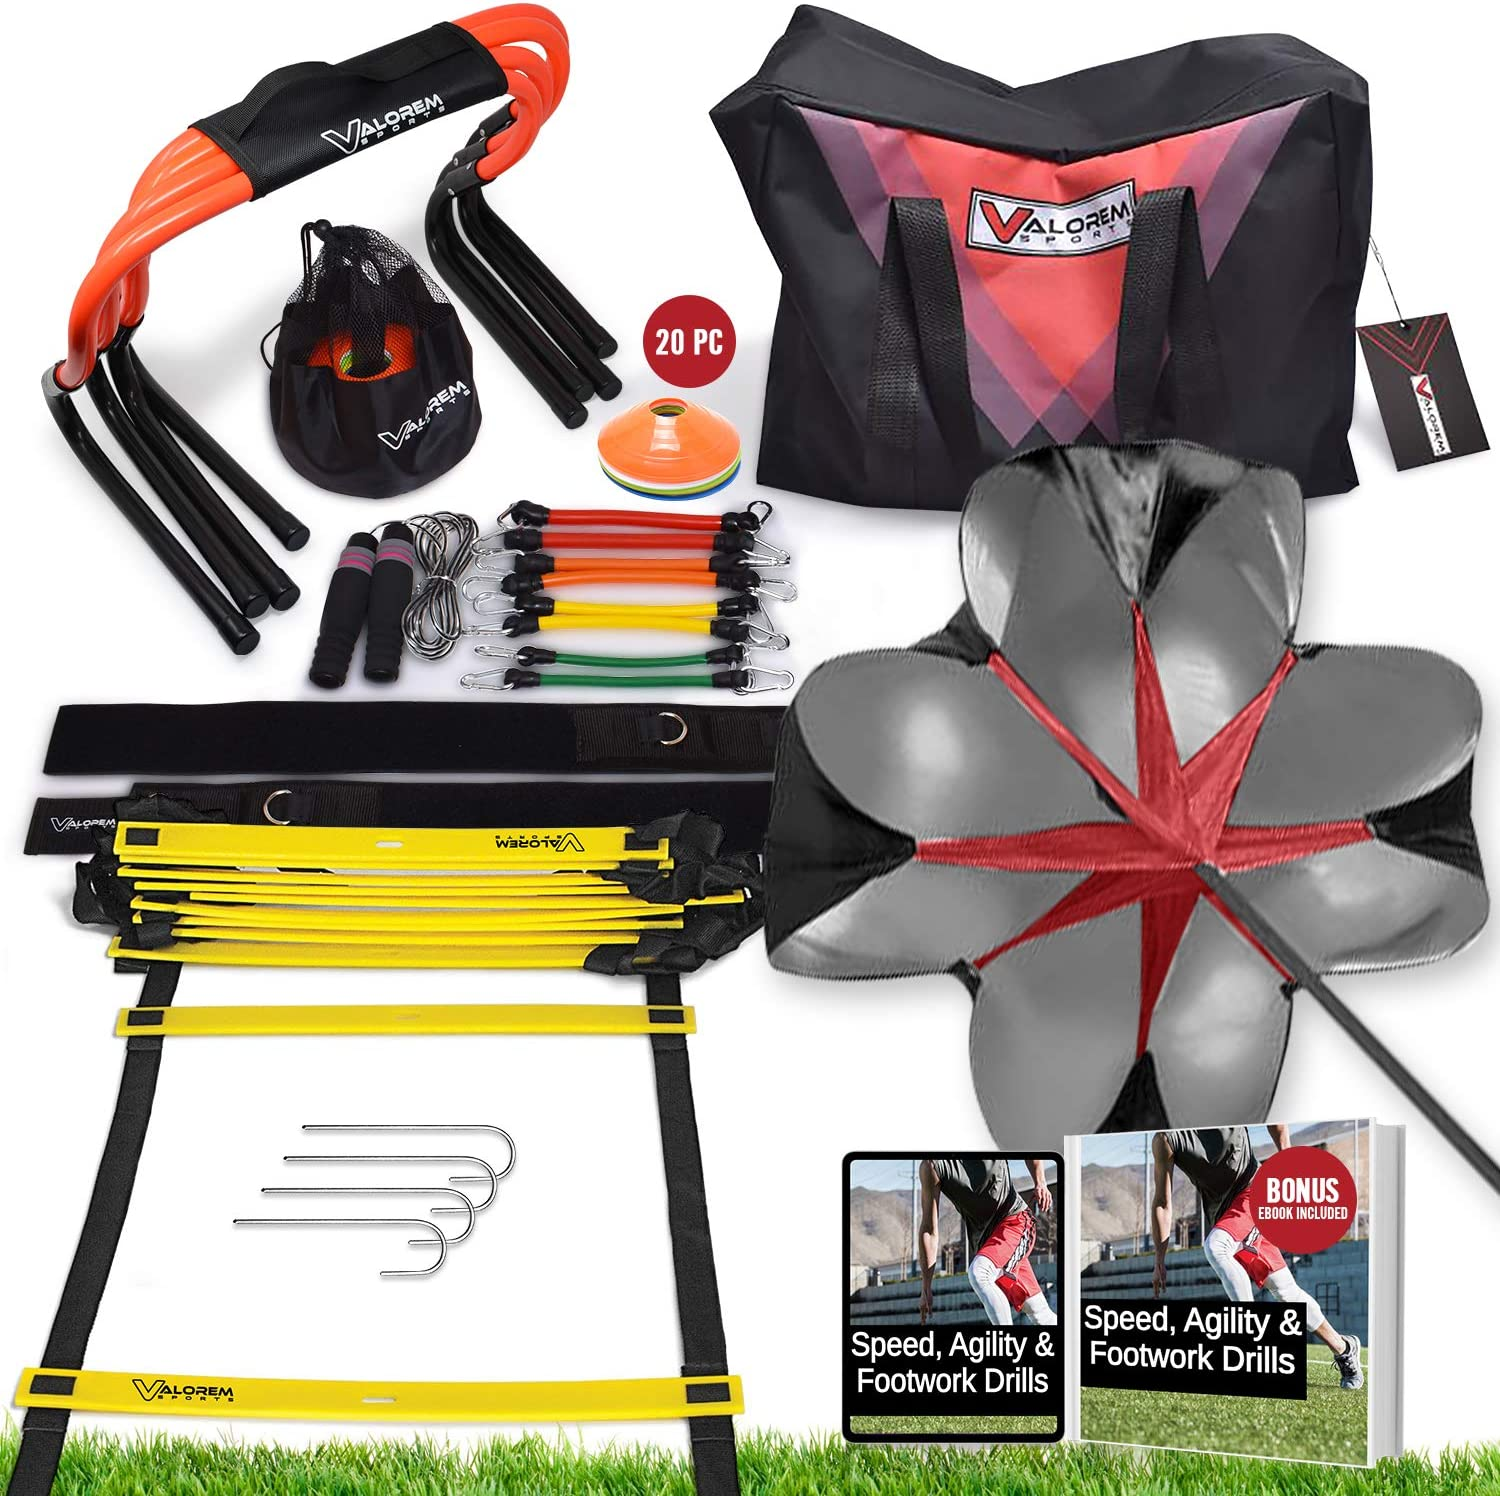 Speed & Agility Training Equipment Set - Includes 4 Agility Hurdles, 20 Disc Cones, Agility Ladder, Adjustable Leg Resistance Bands, Speed Parachute, Jumping Rope & Carry Bag - Designed For All Sports : Sports & Outdoors